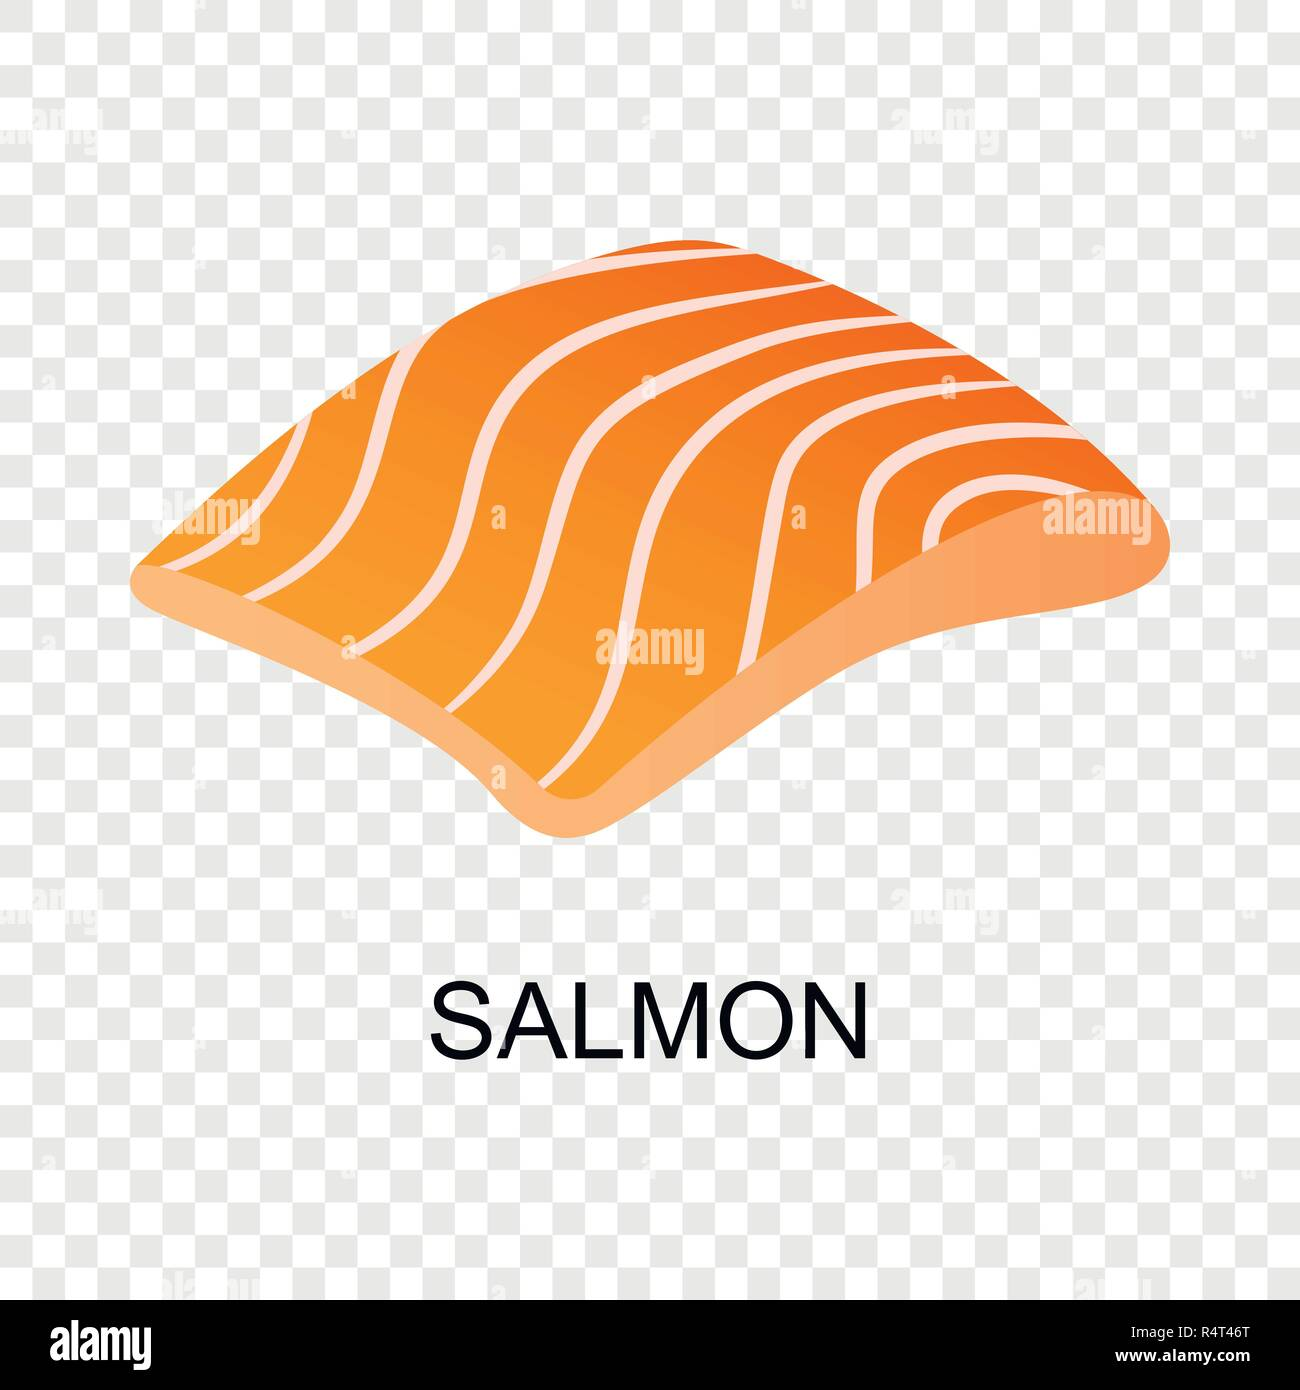 slice of salmon icon isometric of slice of salmon vector icon for on transparent background stock vector image art alamy https www alamy com slice of salmon icon isometric of slice of salmon vector icon for on transparent background image226723584 html